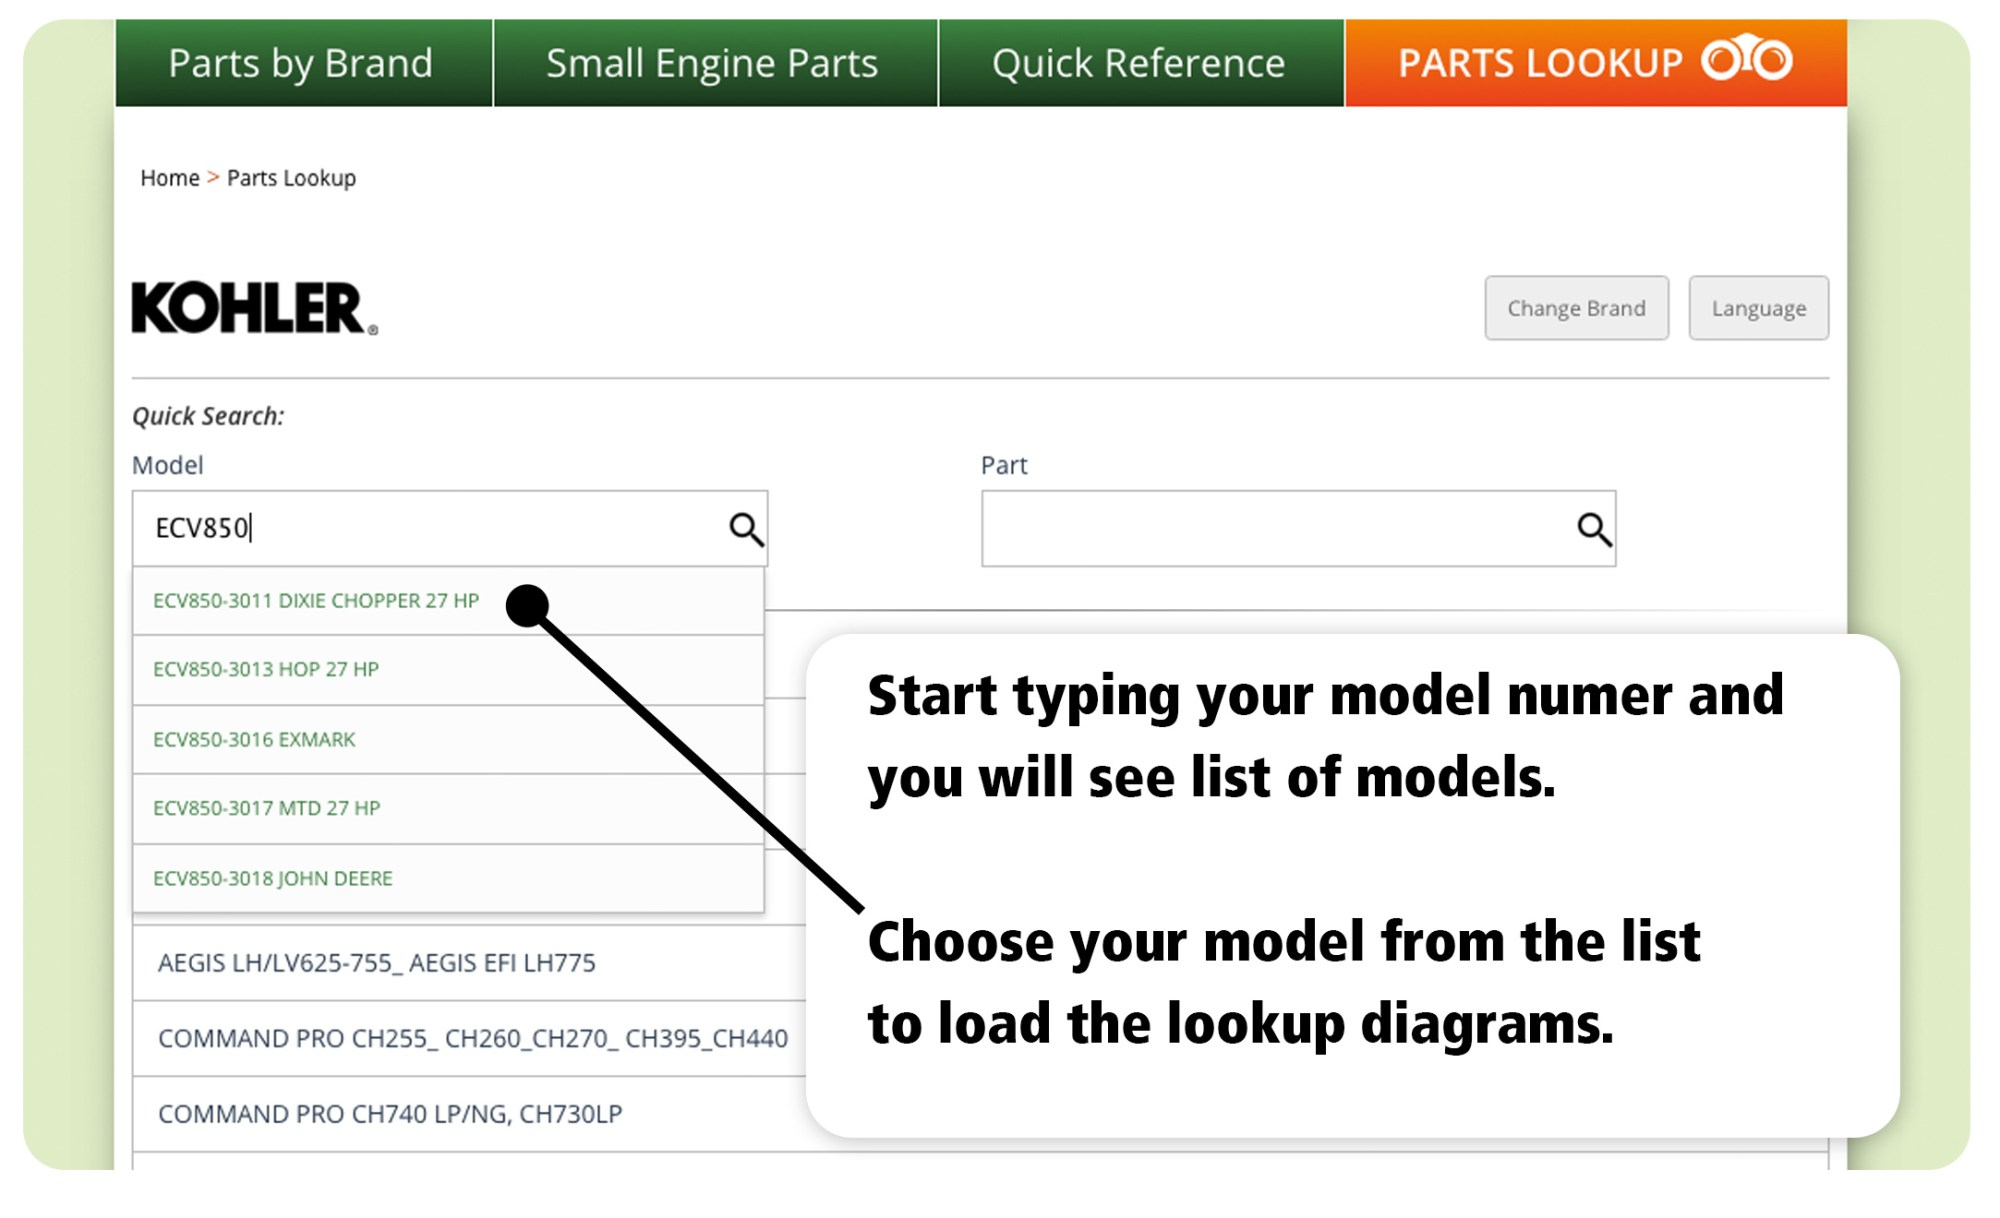 hight resolution of when you get to powermowersales com use the model information to load the parts diagrams you need